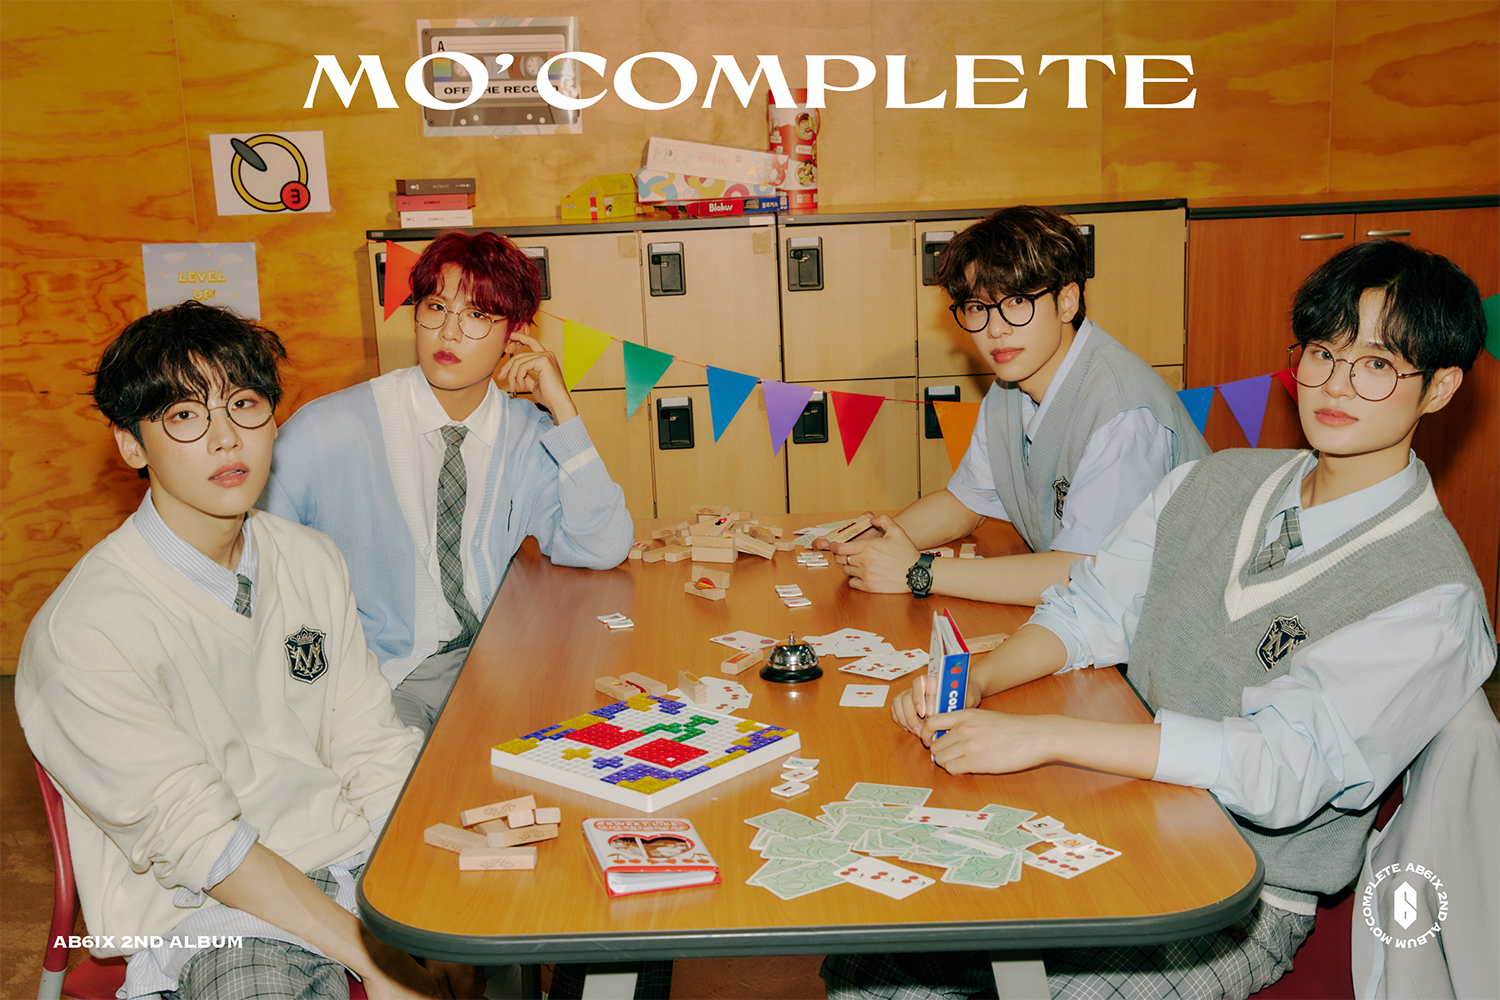 'MO' COMPLETE' Concept Photo: AB6IX Exudes Youthful Aura in Their School Uniform